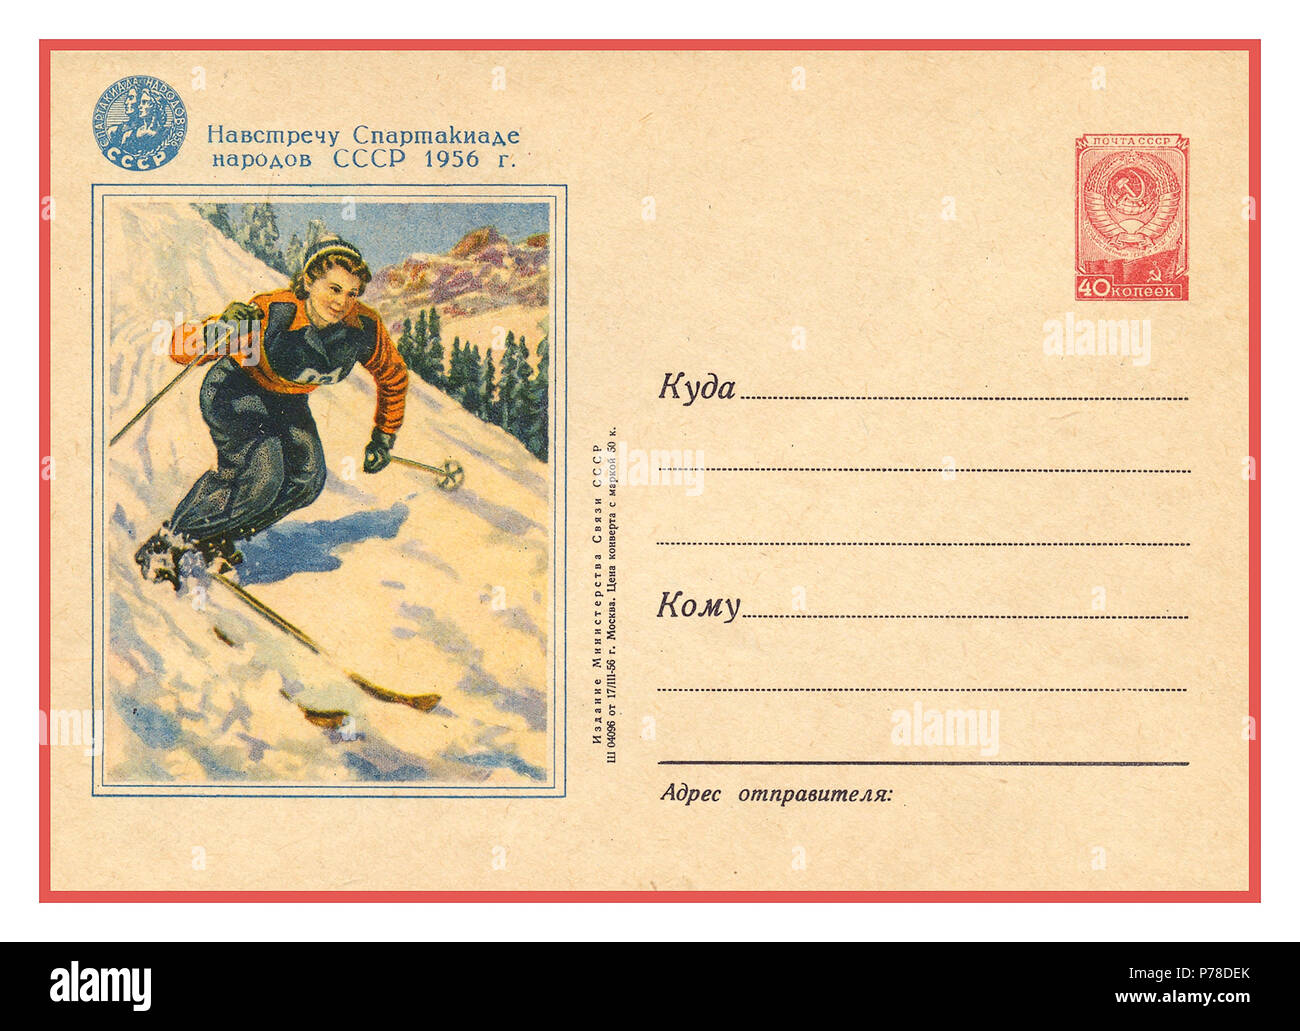 1956 Vintage Winter Olympic Games Postcard celebrating CCCP Russia sports activities participation, illustration with USSR Soviet CCCP postage Stamp - Stock Image